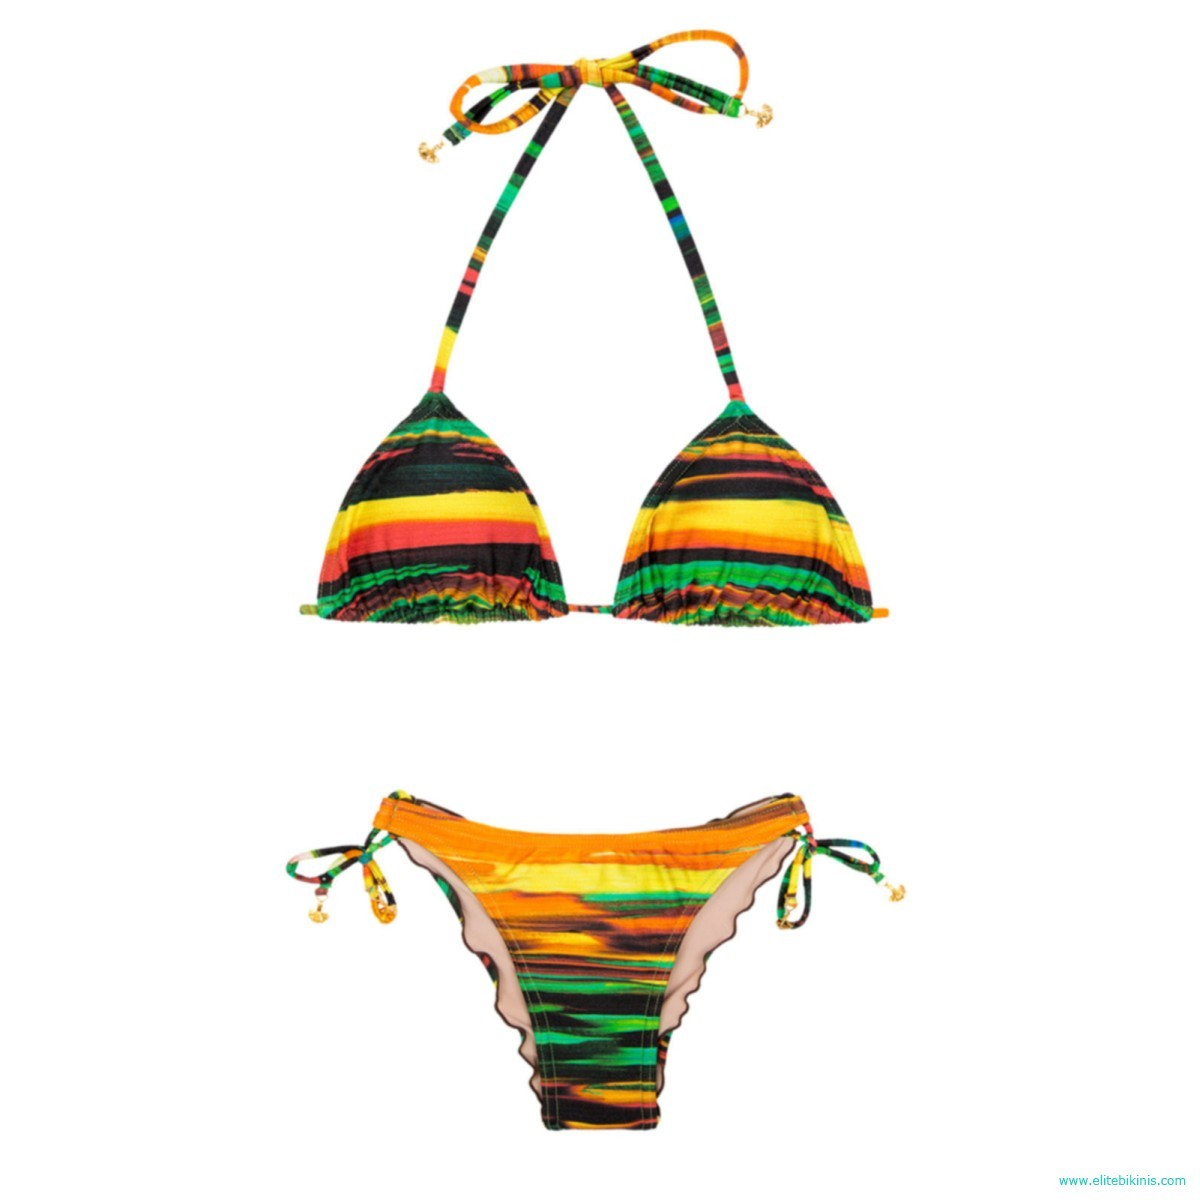 1a038accfbd Lua Morena brings from Brazil this brand new multicolored brazilian bikini  model, the Pintura Coracao from 2017 collection. The top of Pintura Coracao  ...